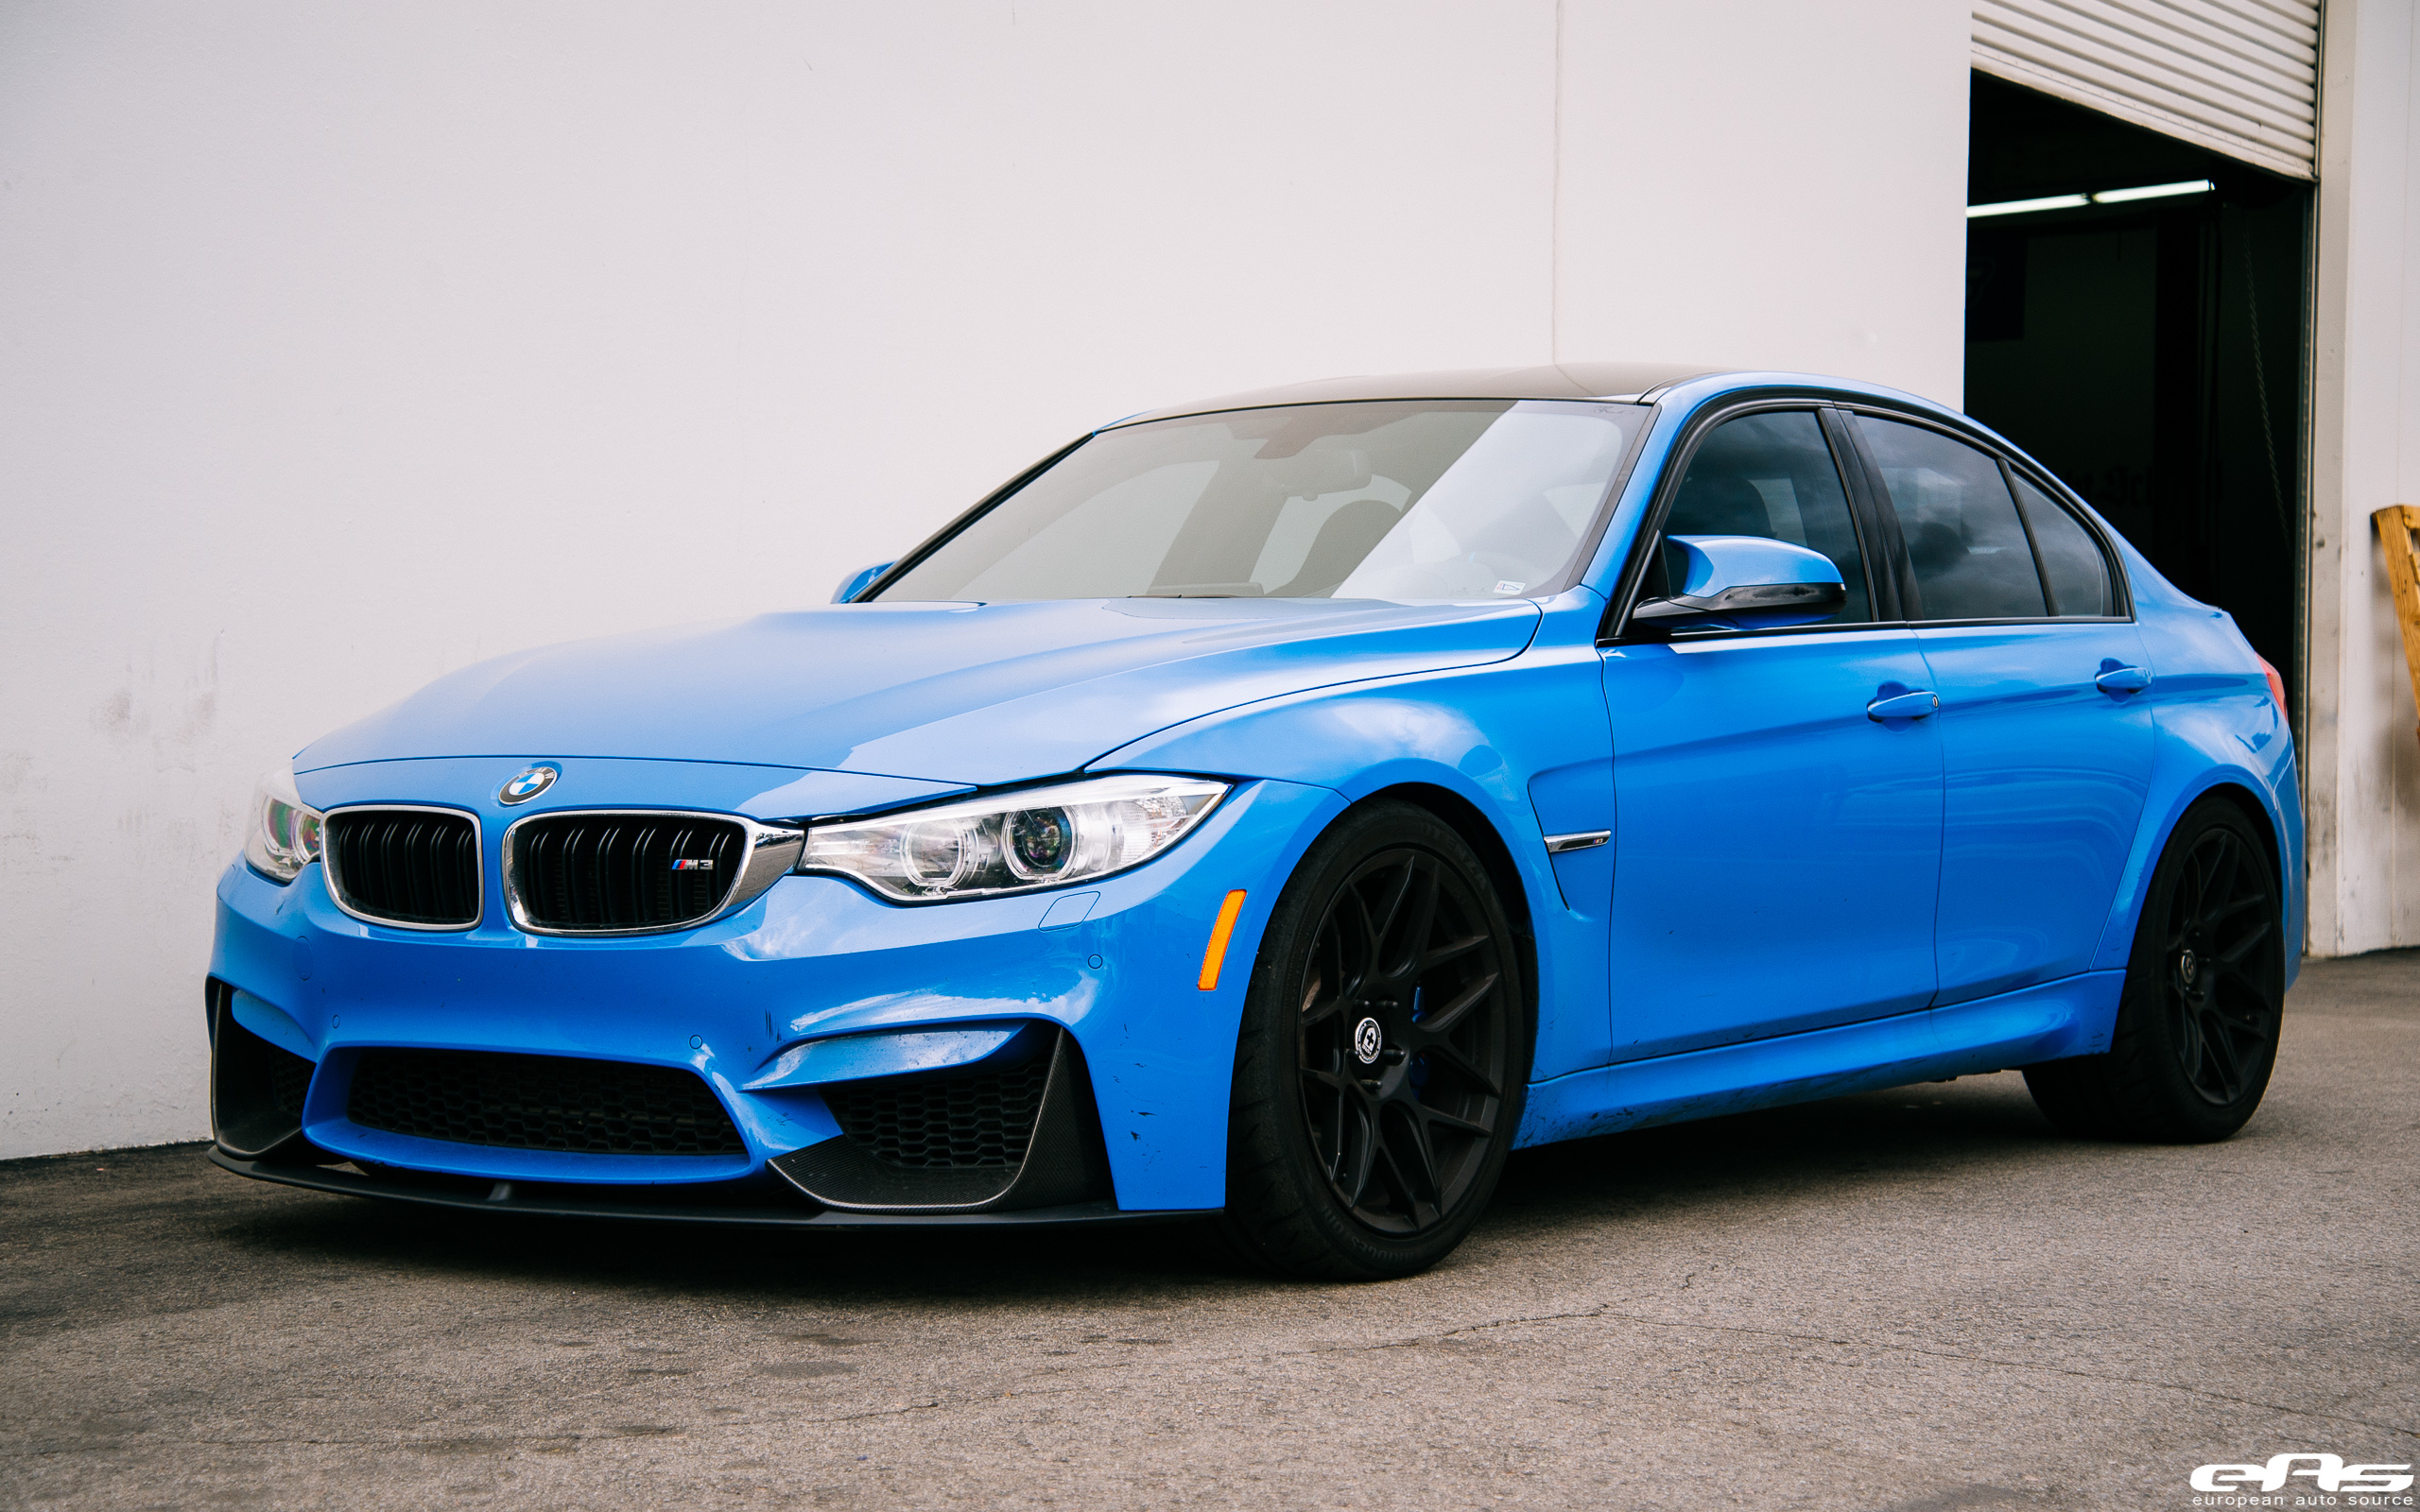 Yas Marina Blue BMW M3 Looking Clean Impressive Image 4